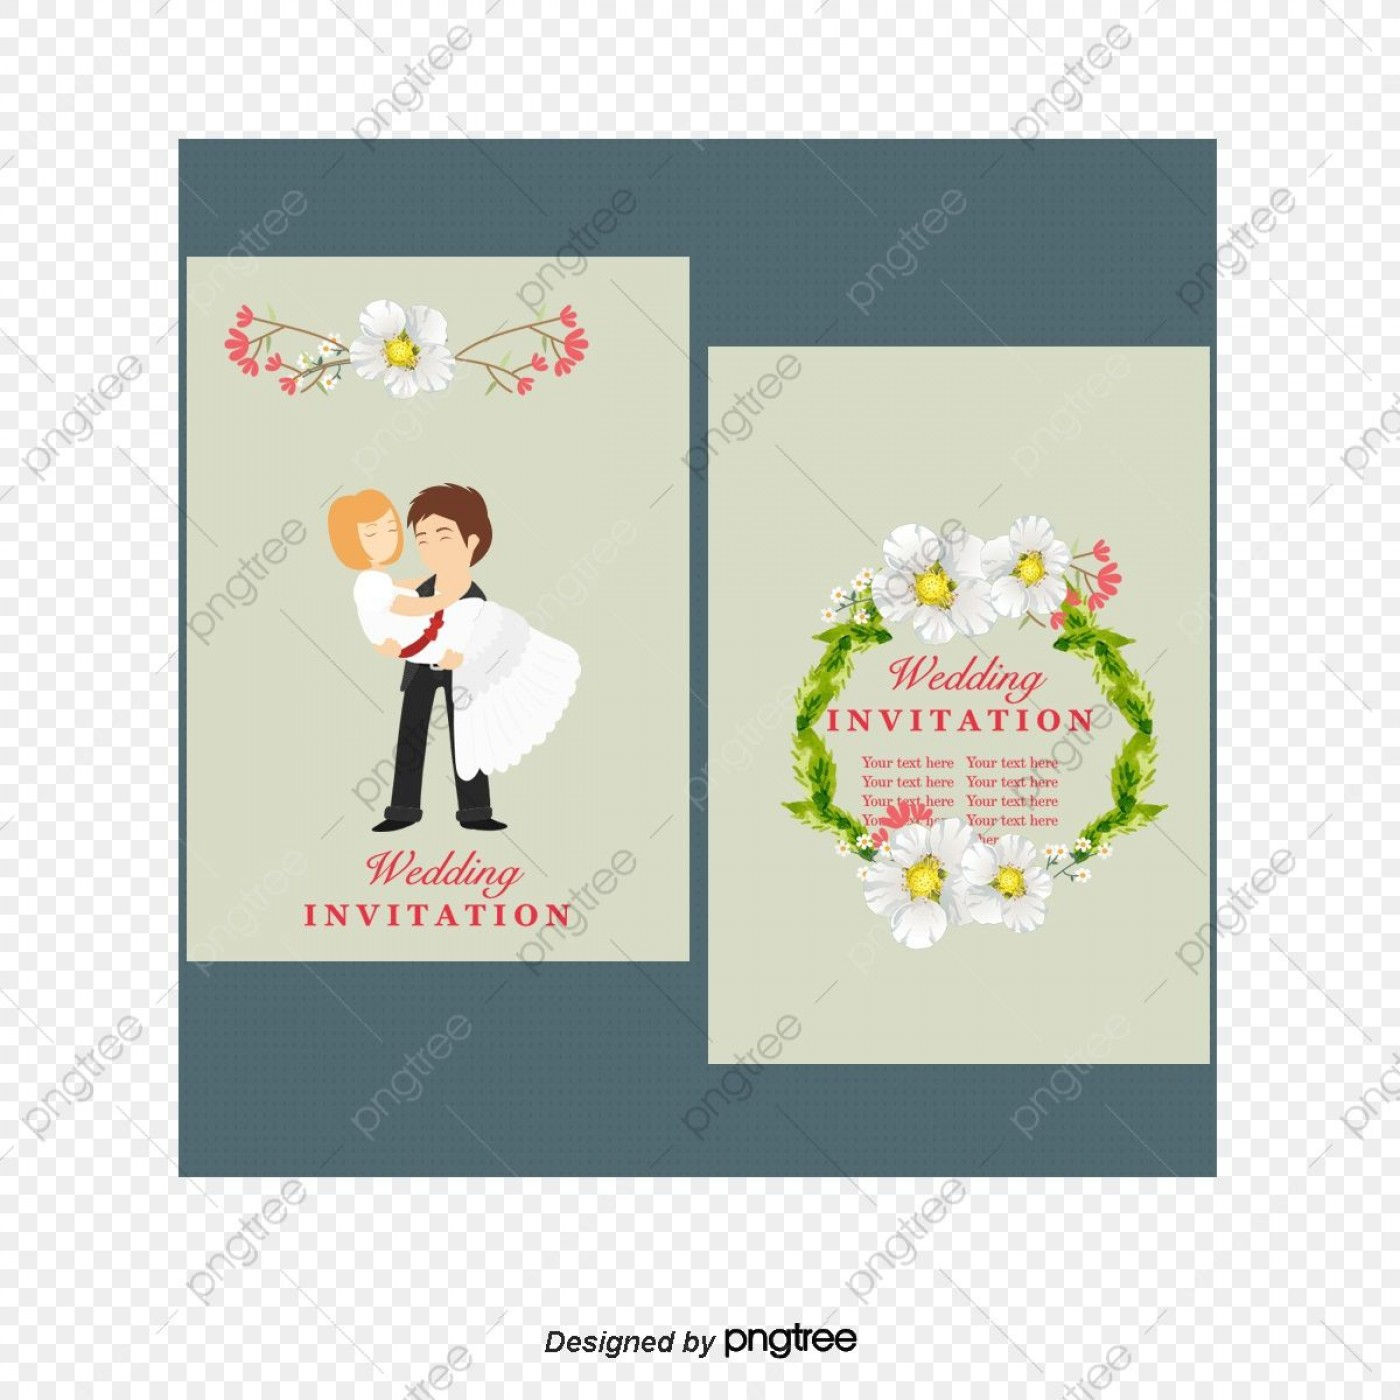 006 Marvelou Free Download Marriage Invitation Template Design  Card Psd After Effect1400